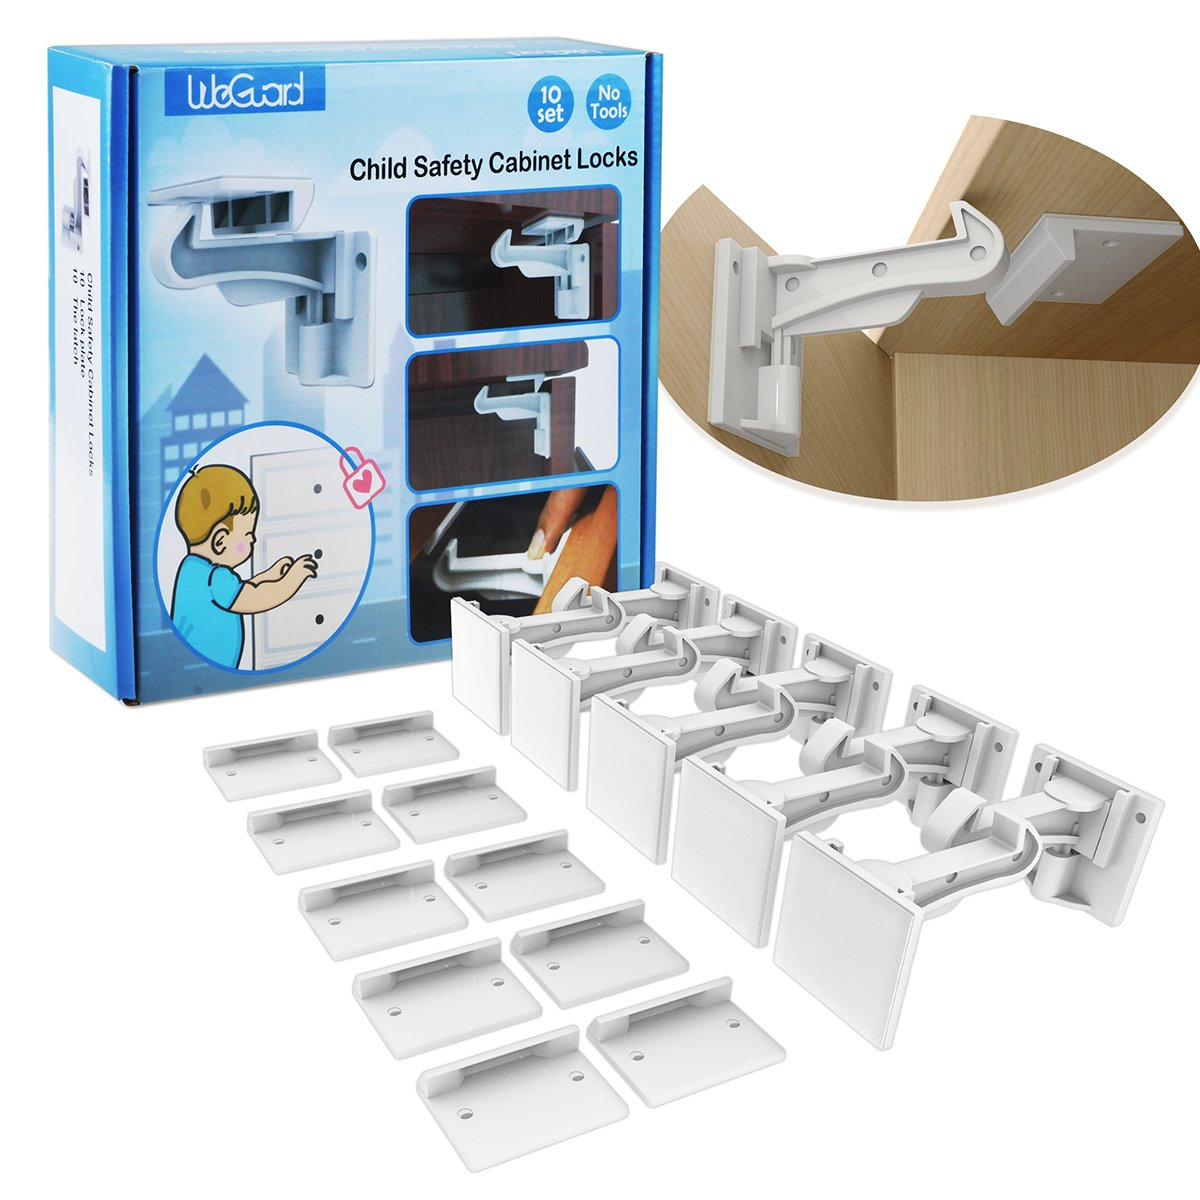 Cabinet Locks Child Safety, WeGuard 10 Pack [Upgraded] Invisible Baby Proof Drawer Cabinet Locks Latches - No Tool No Key Needed